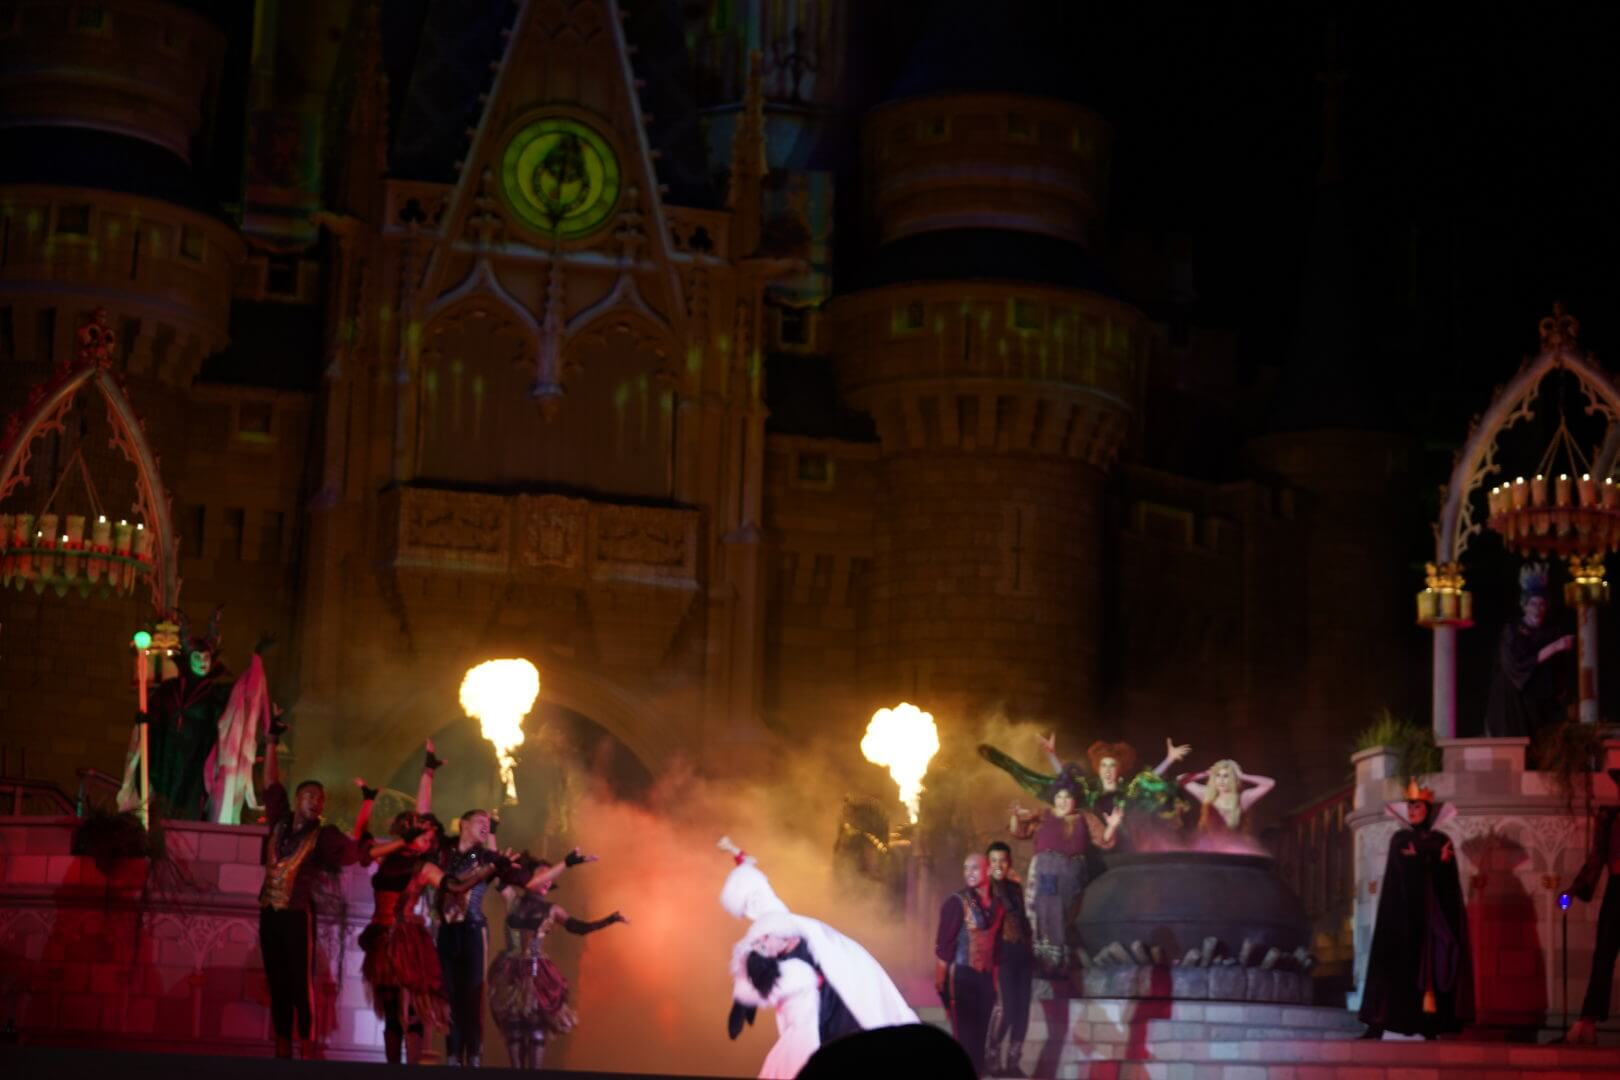 Cruella de Vil - Hocus Pocus Villain Spelltacular at Disney World